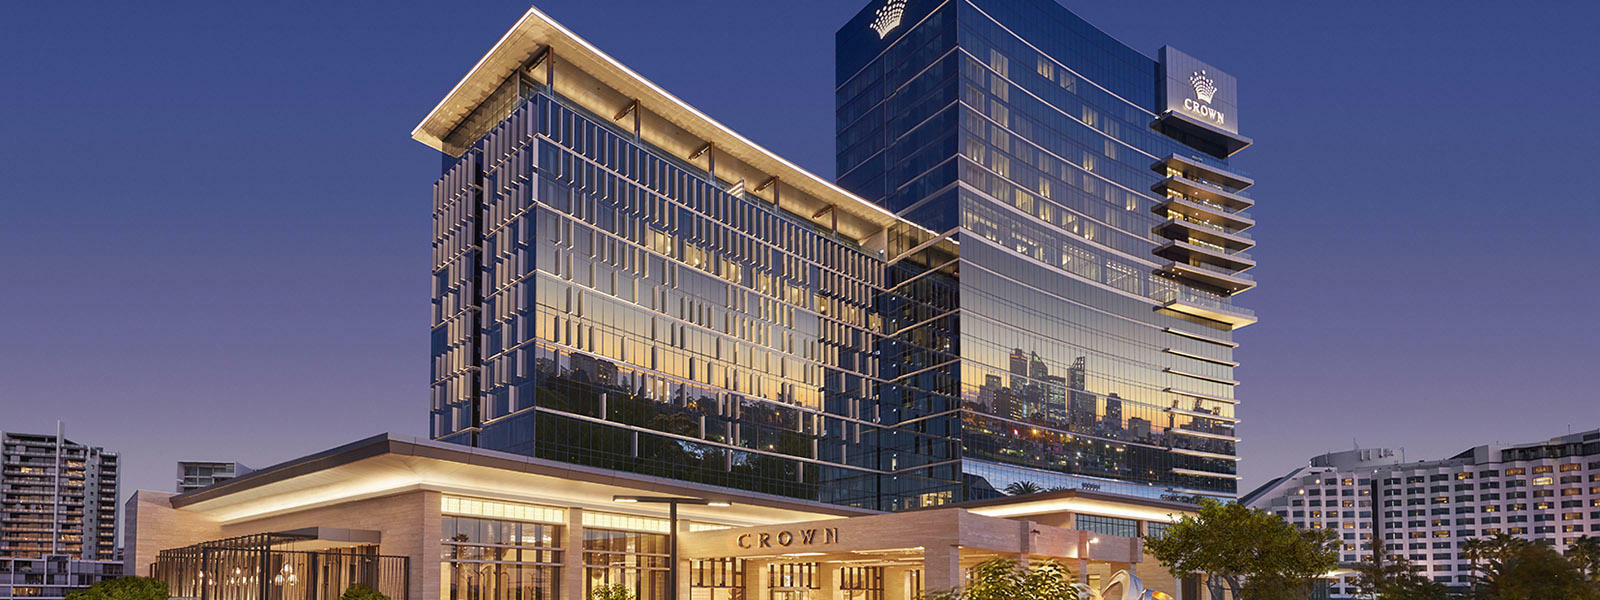 Crown Towers Continues To Set The Standard In Australia's Luxury Hotel Market